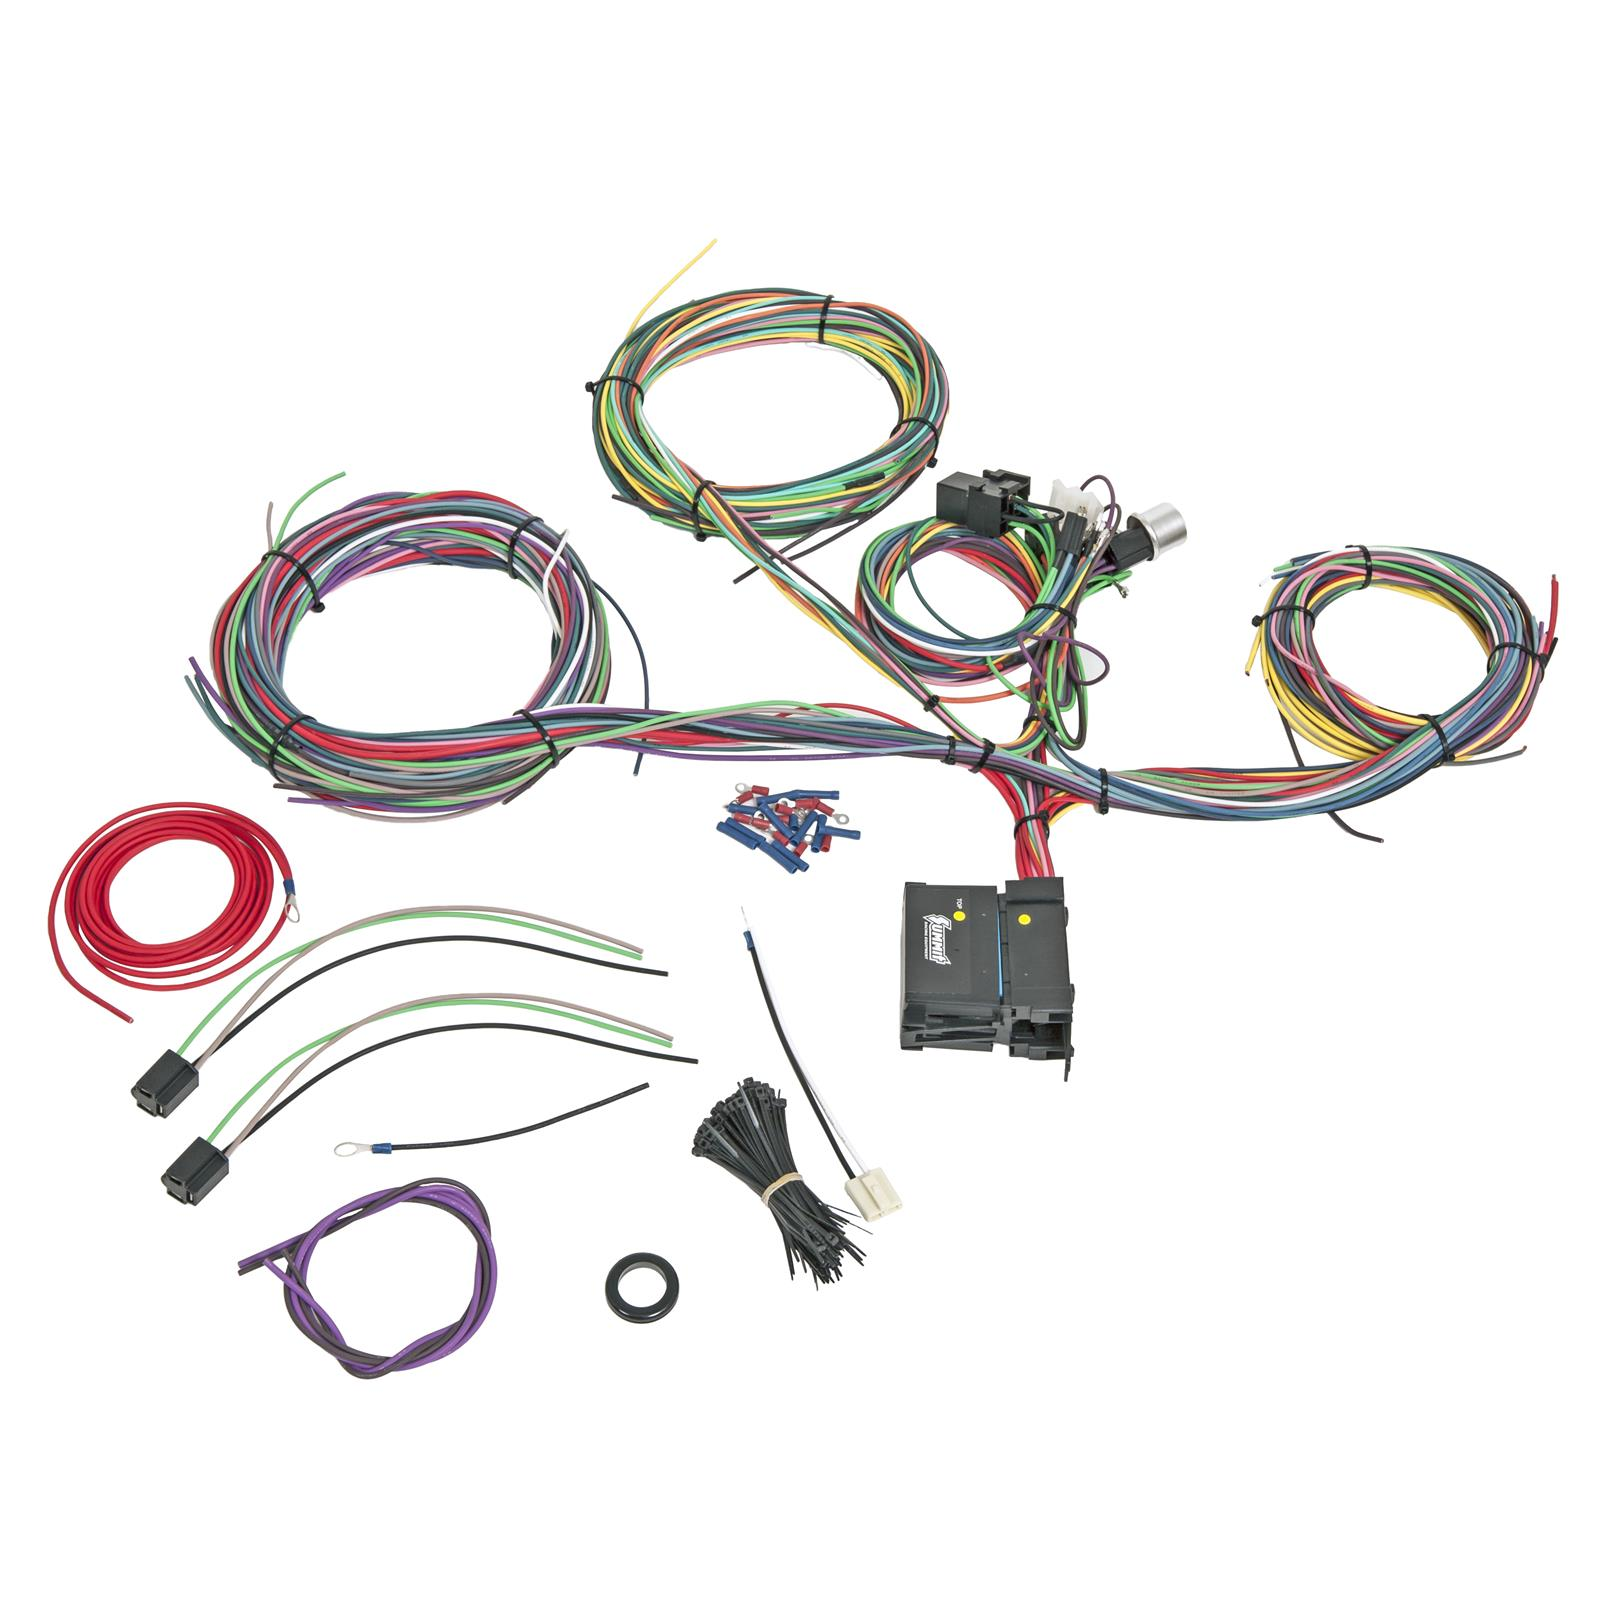 hight resolution of summit racing 18 circuit universal wiring harnesses sum 890021 free shipping on orders over 99 at summit racing